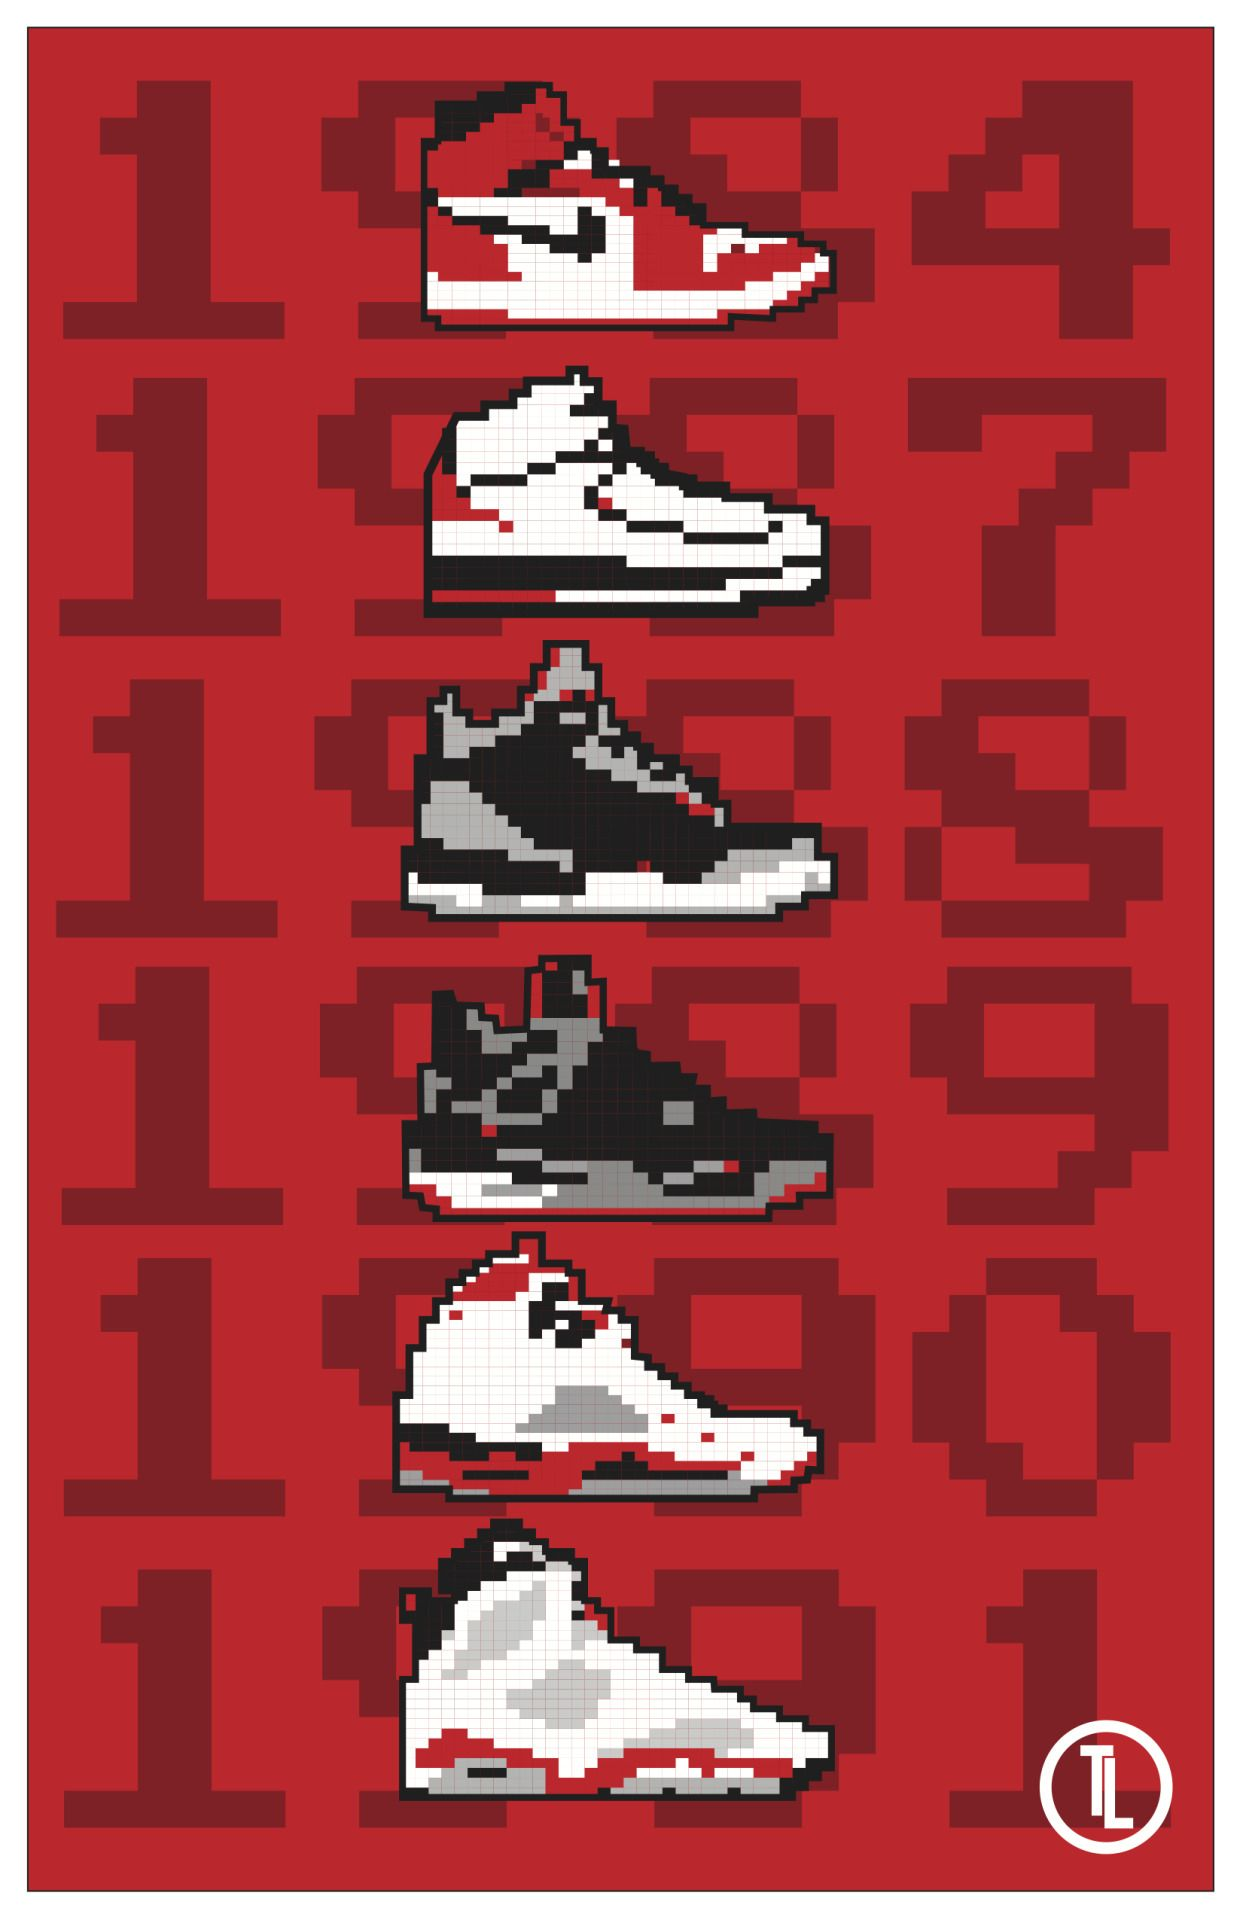 4db85cde61fc 8-Bit Jordan 1-6 Digital poster I designed. Prints available at https